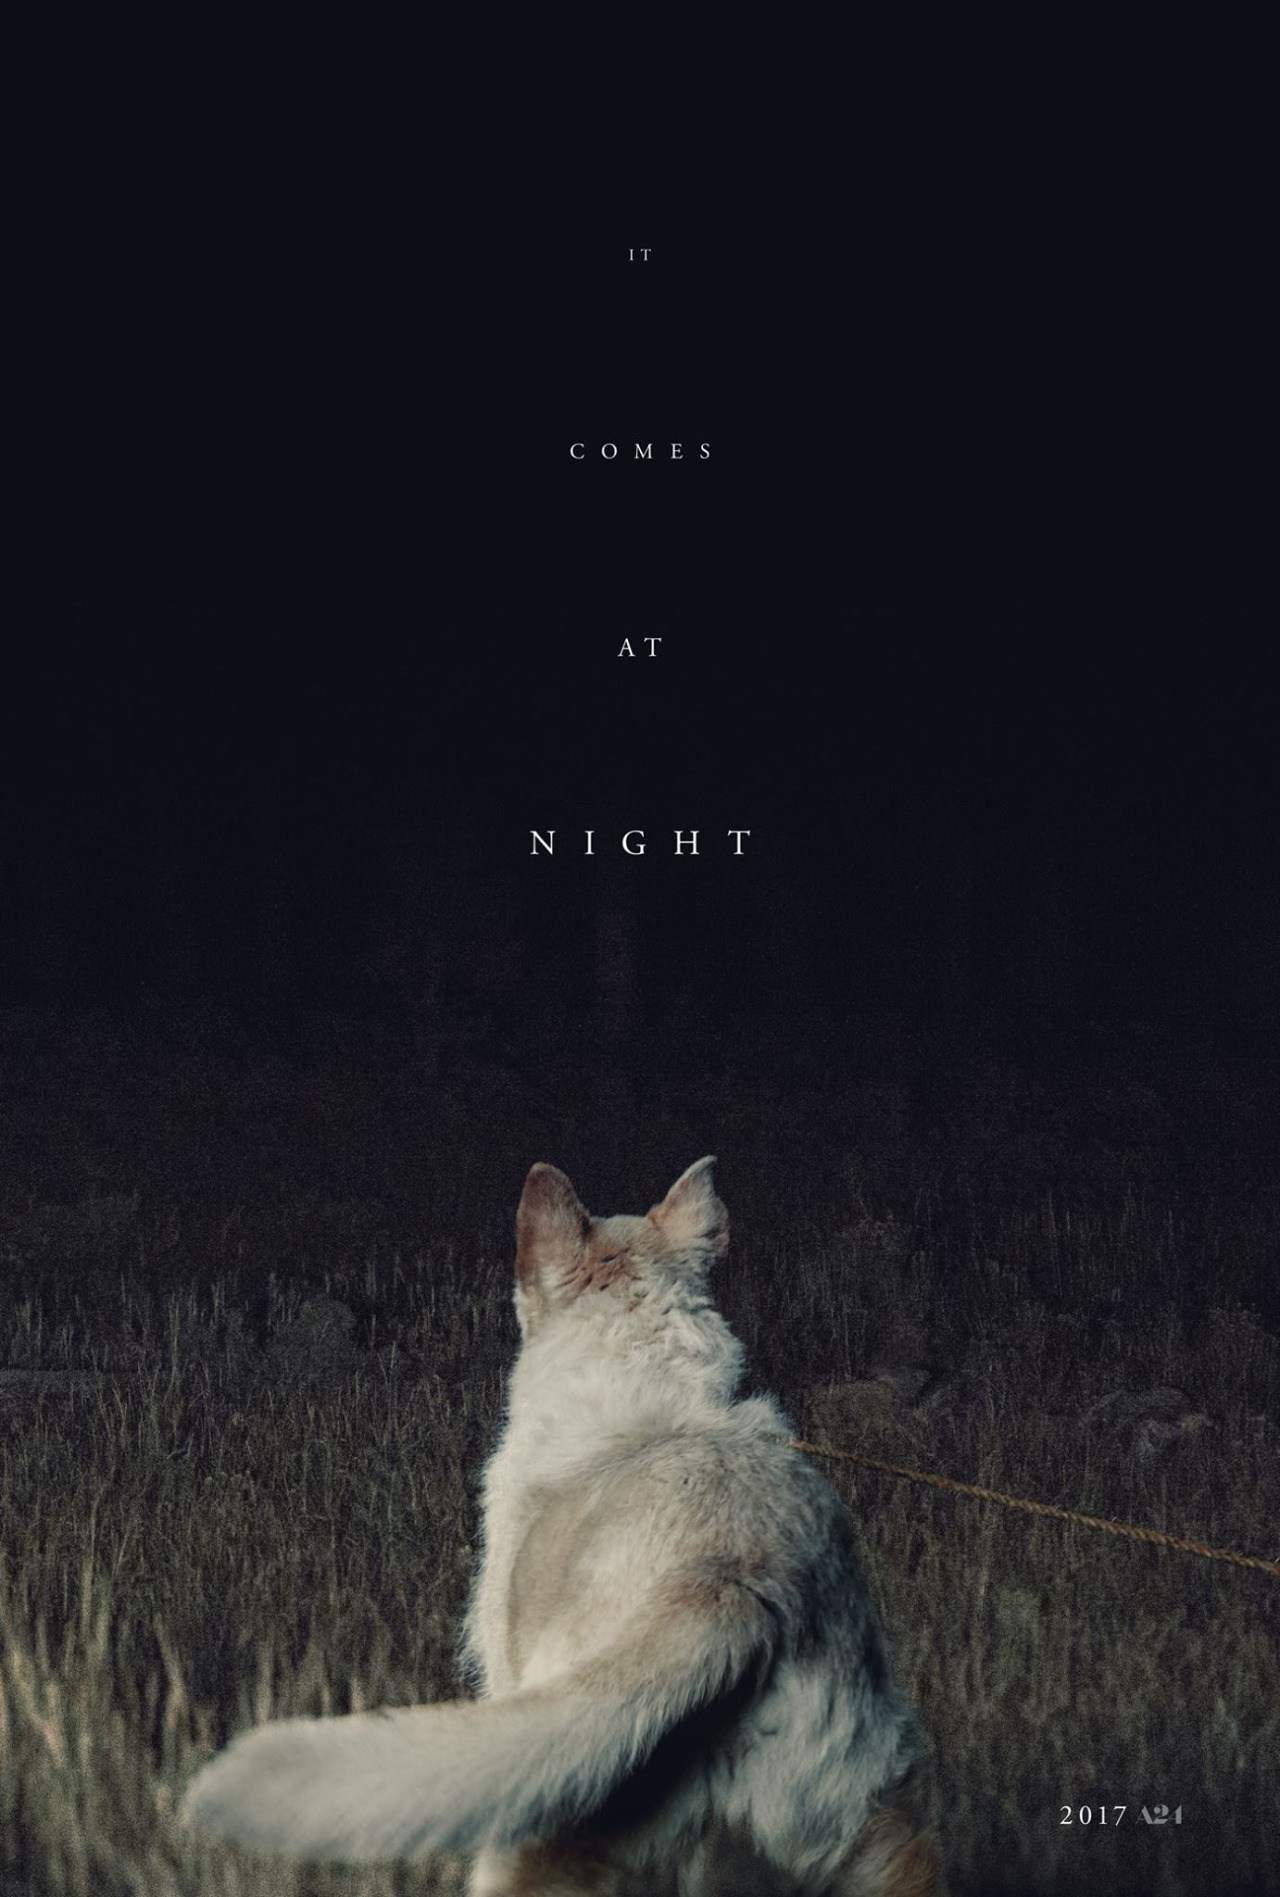 it-comes-at-night-poster.jpg